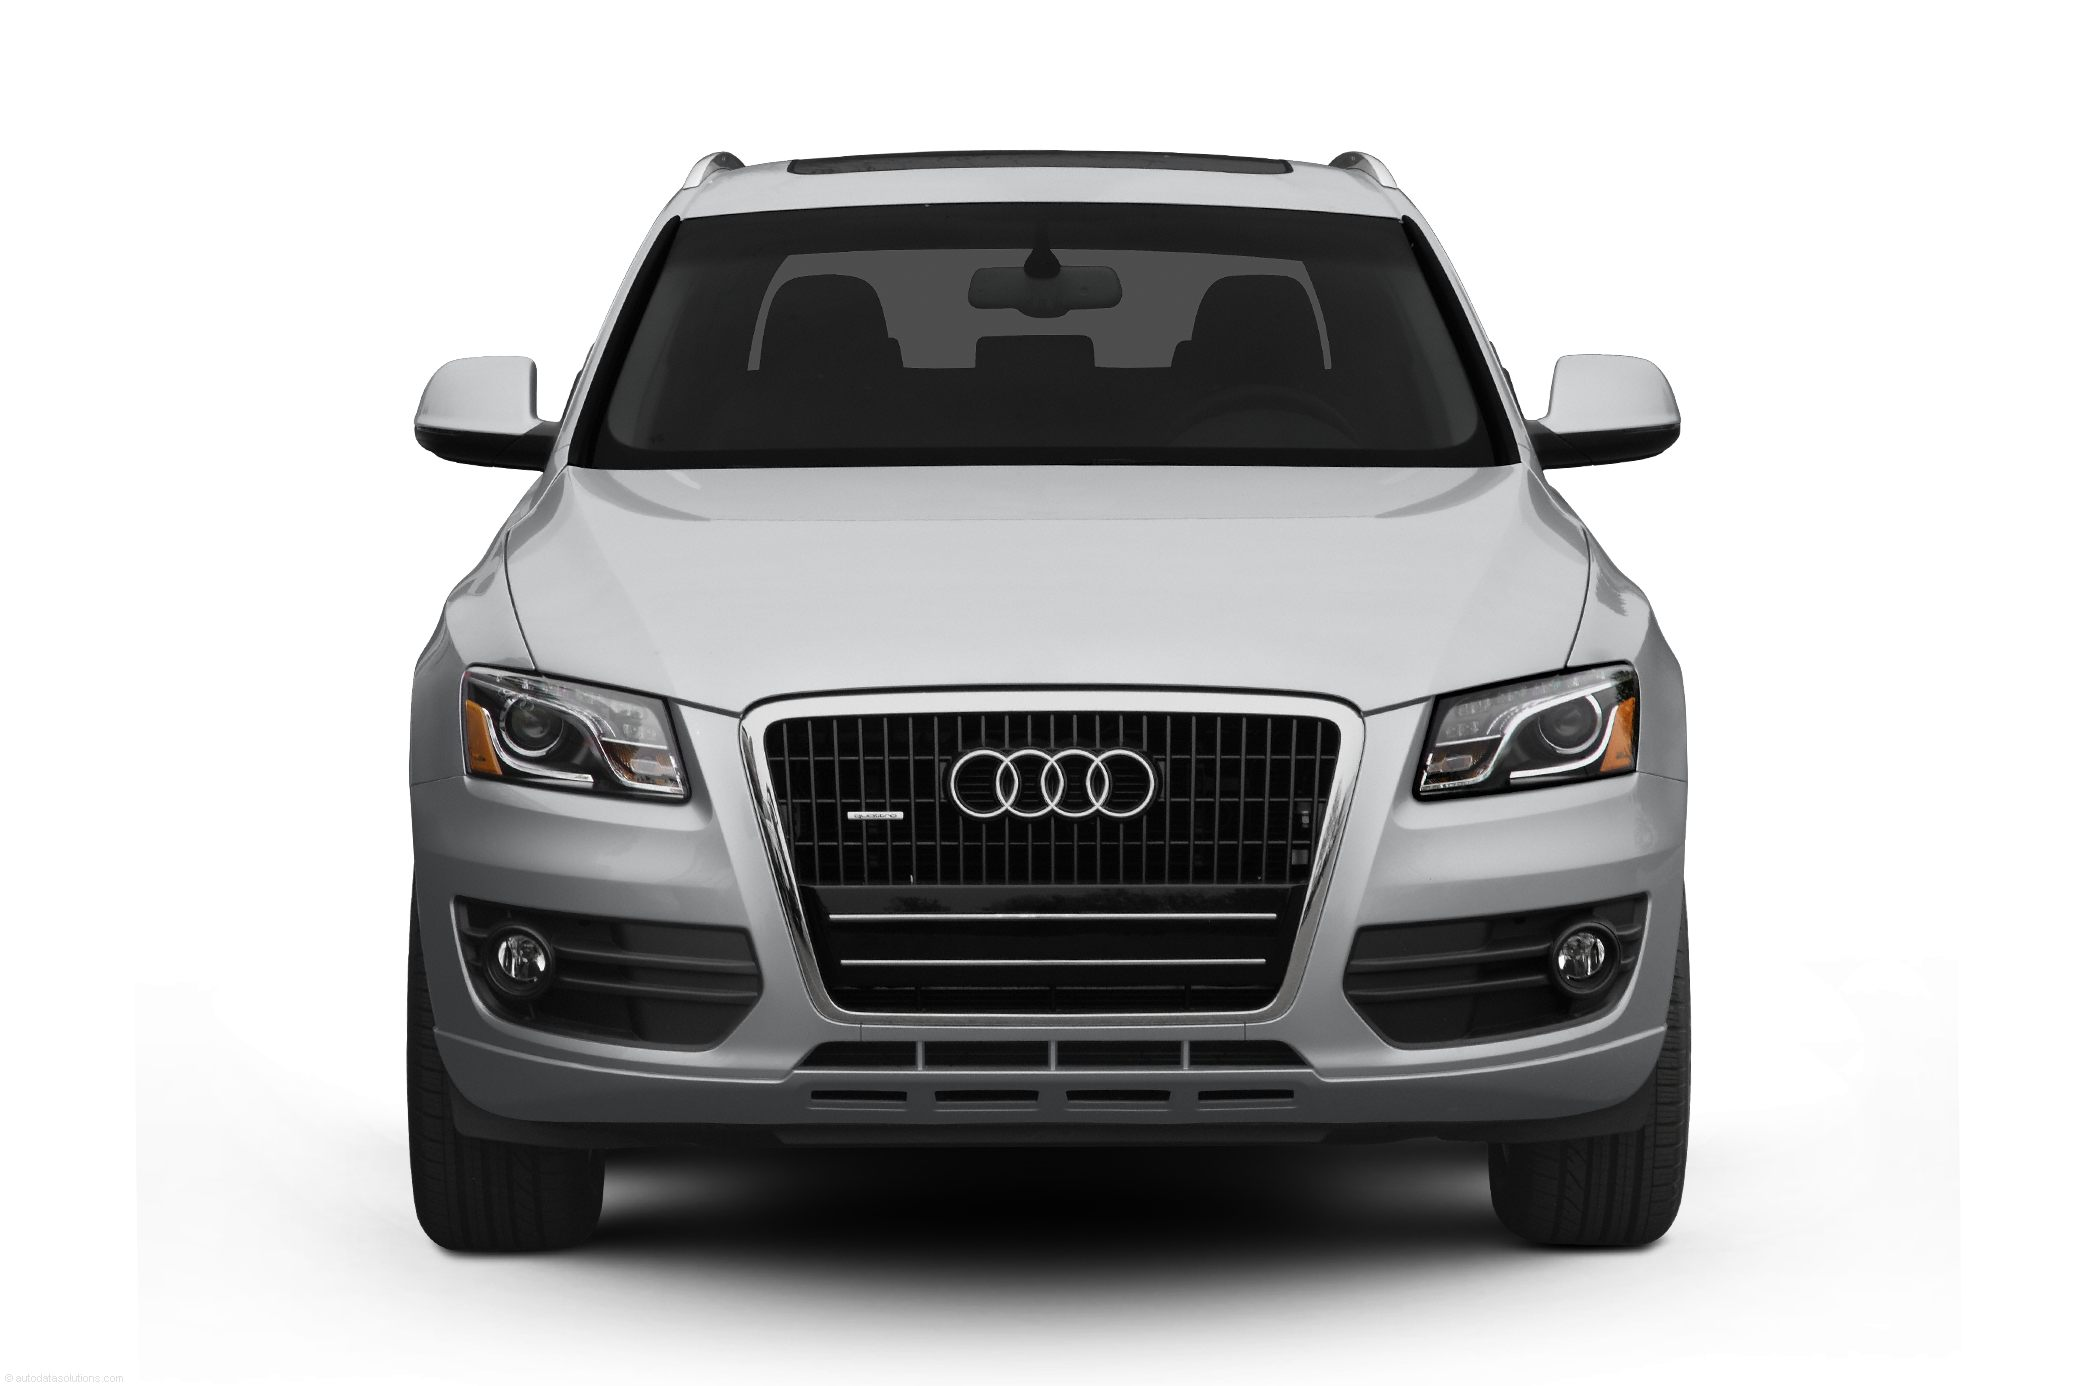 Audi Car Front Png 32703 Free Icons And Png Backgrounds